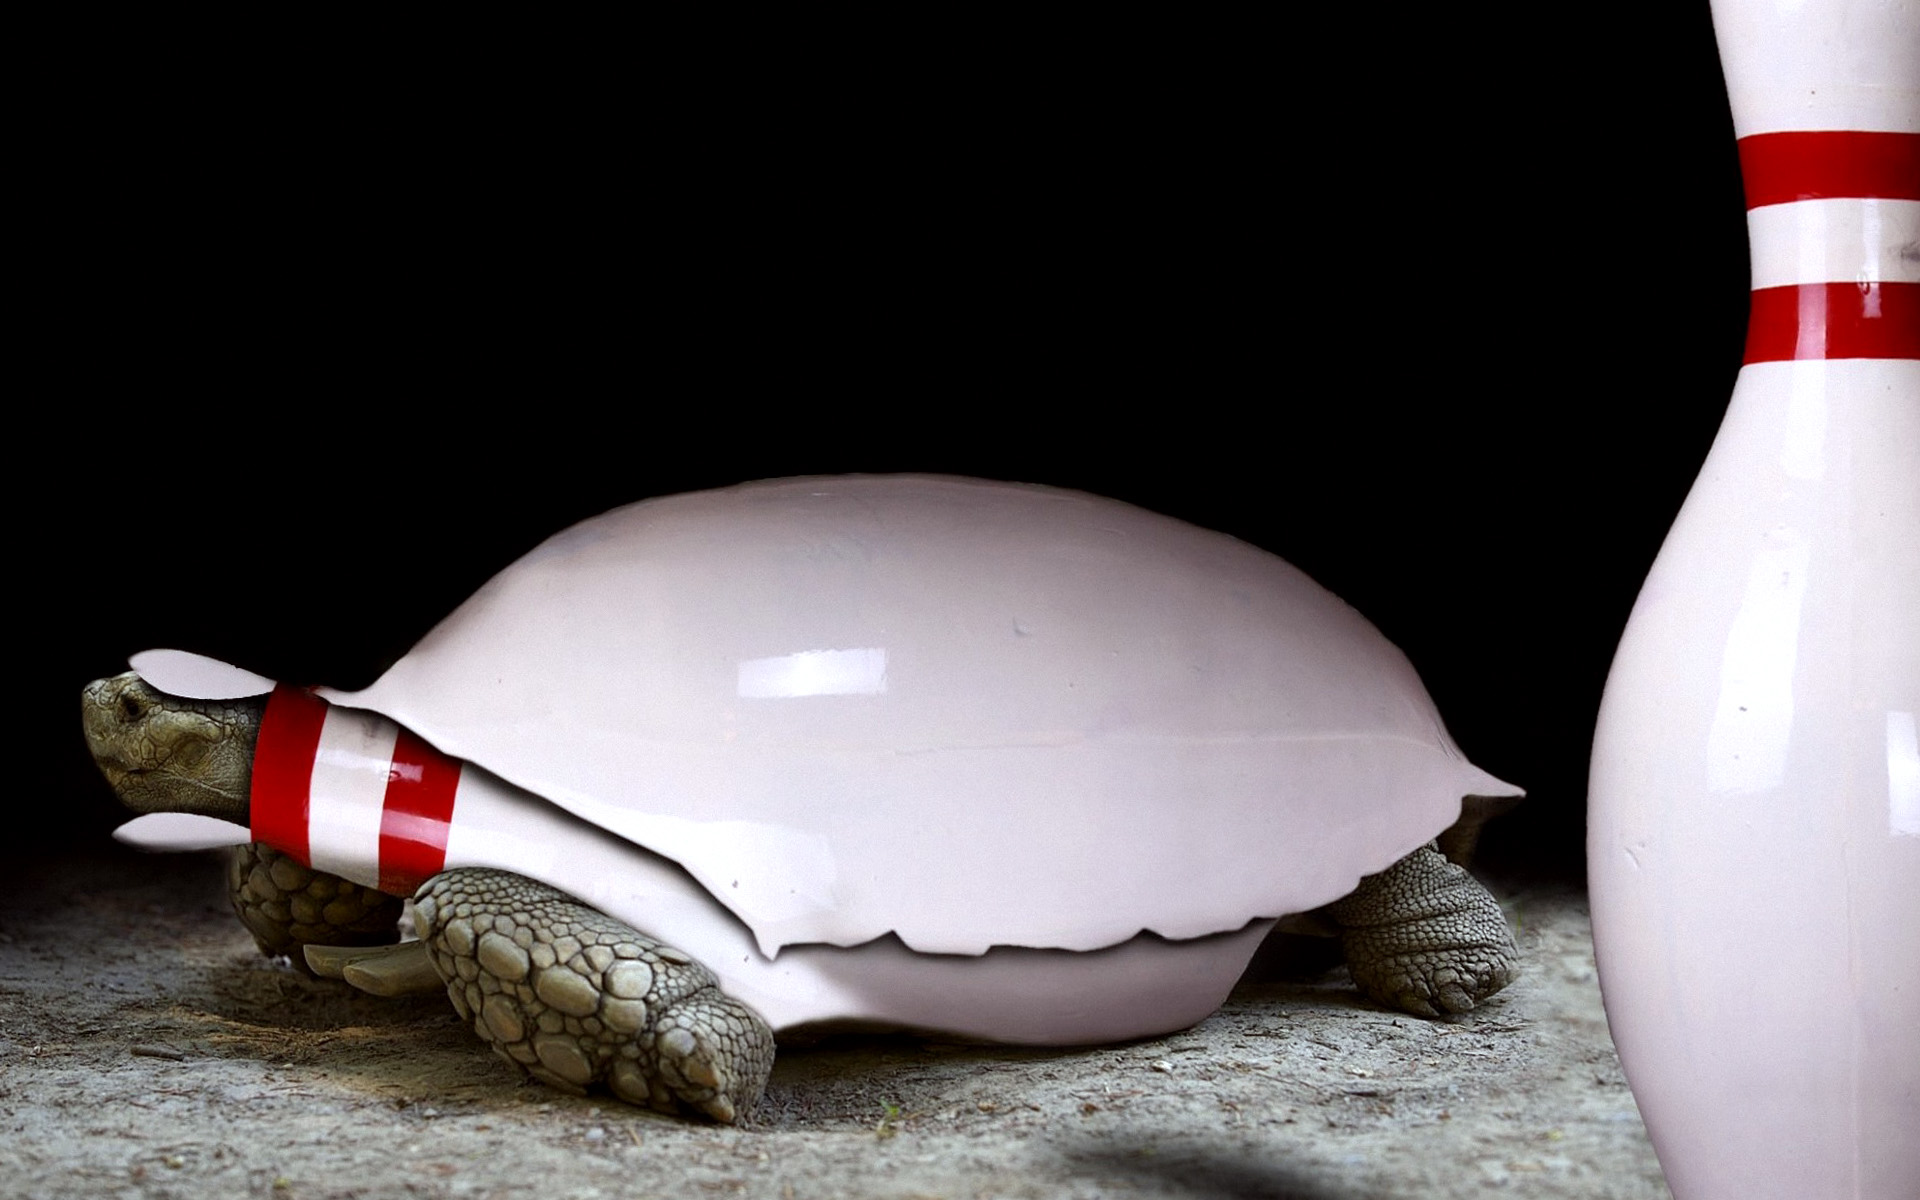 New 3d Desktop Wallpaper Hd 16 Funny Bowling On Turtle Wallpapers Hd Desktop And Mobile